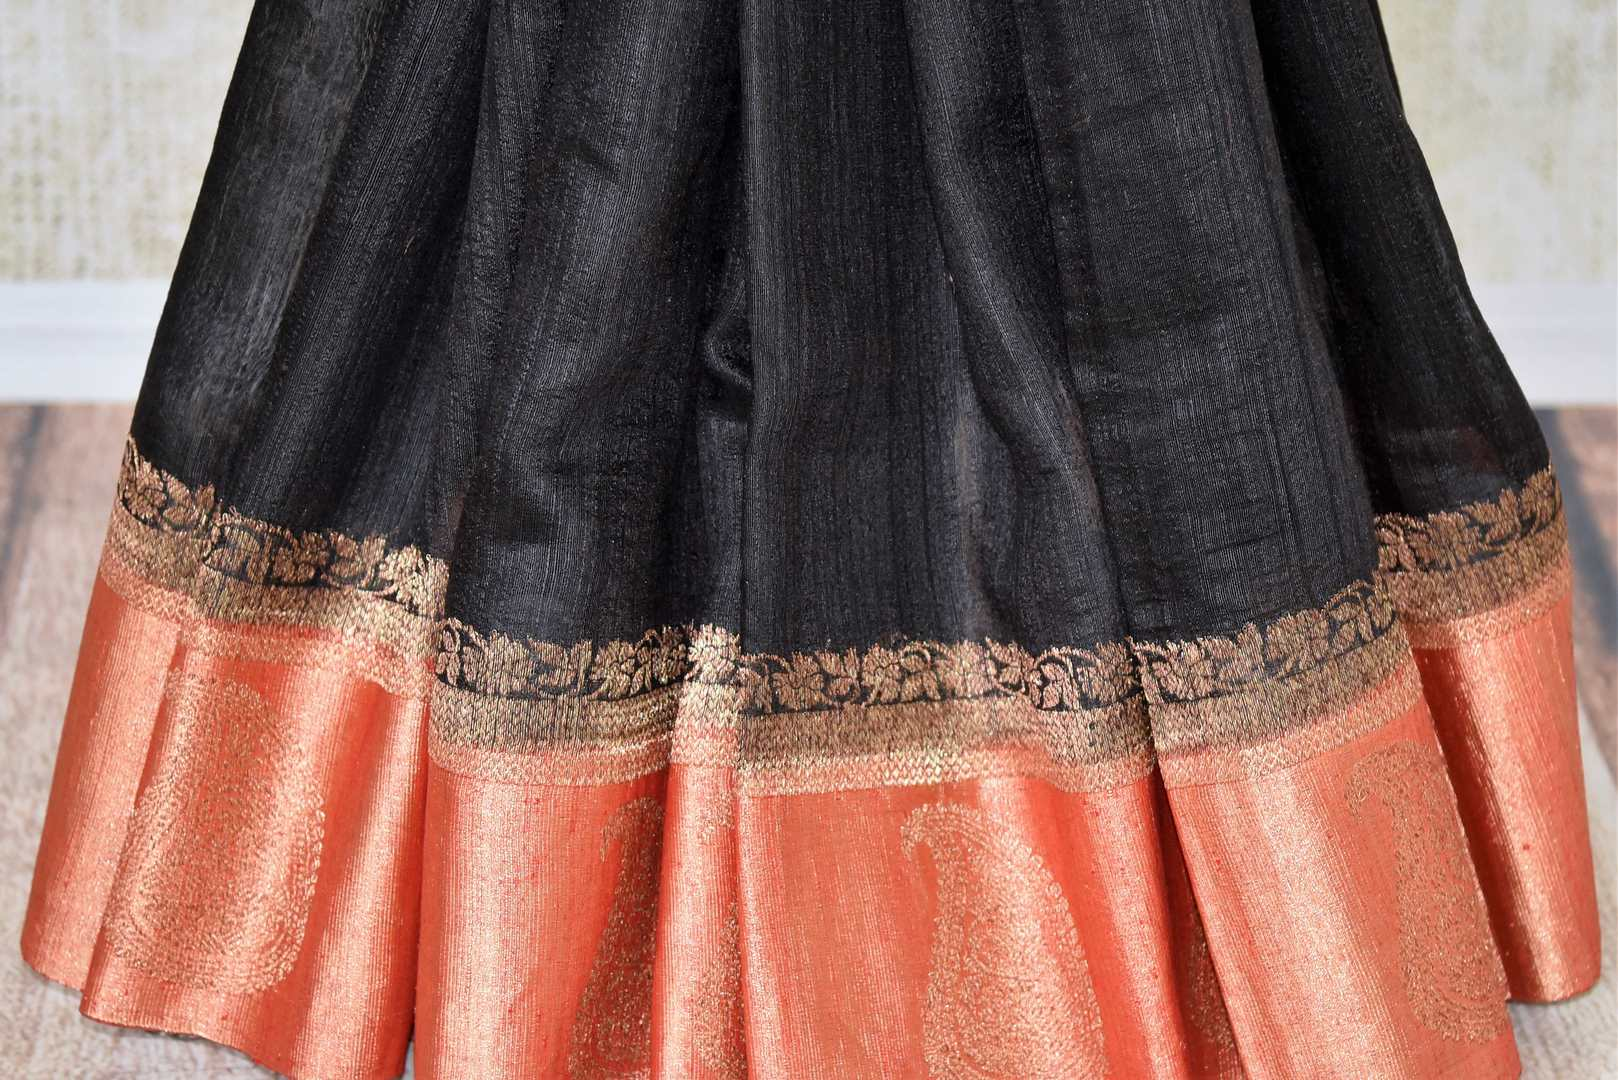 Buy black tussar Benarasi sari online in USA with red zari border and pallu. Make an elegant ethnic fashion statement at parties, weddings and special occasions with a splendid collection of Indian designer sarees, Banarasi saris, handloom saris from Pure Elegance Indian clothing store in USA or shop online.-pleats